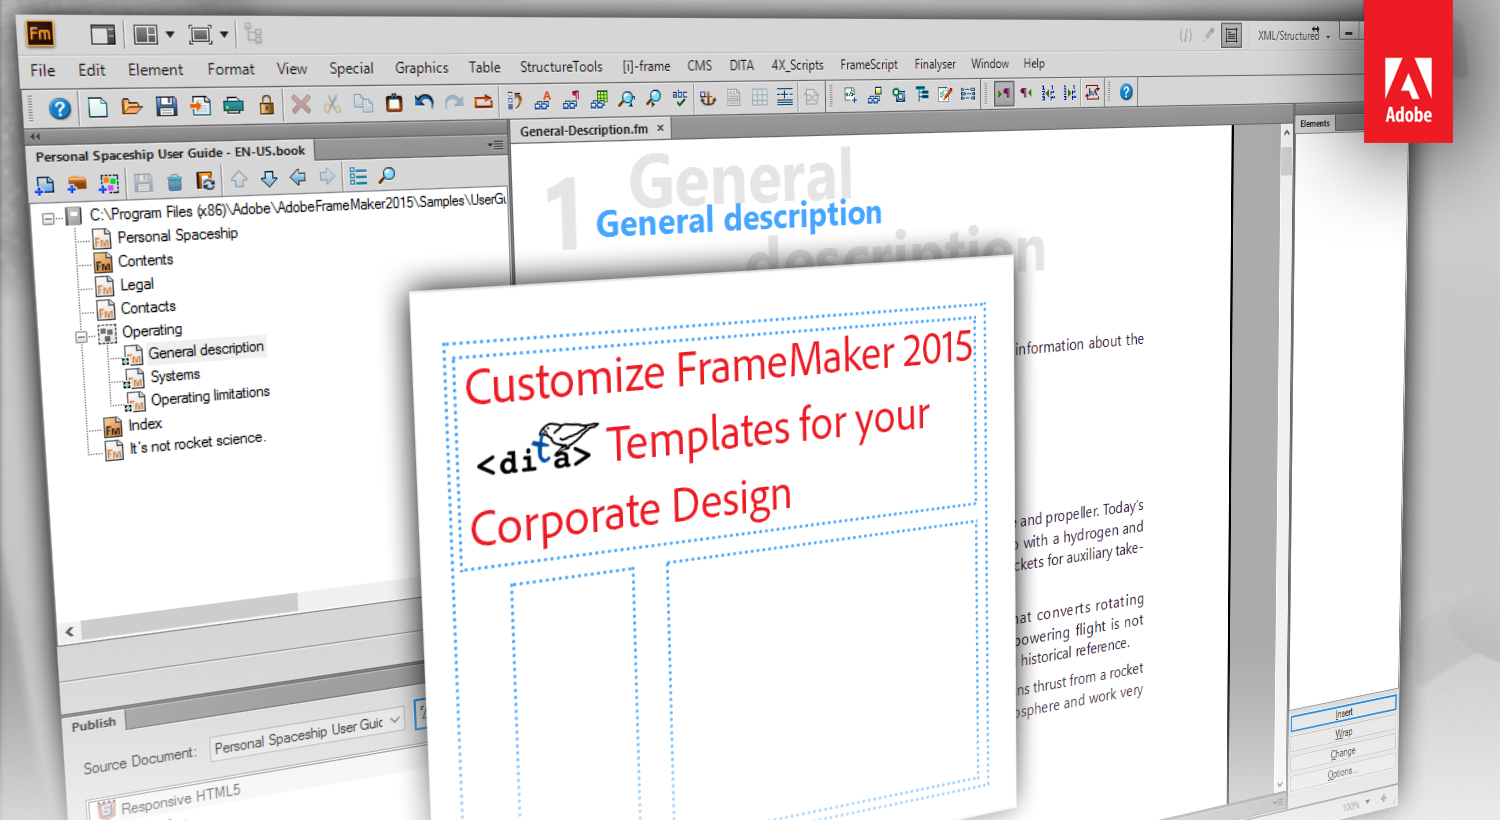 framemaker 2015 download